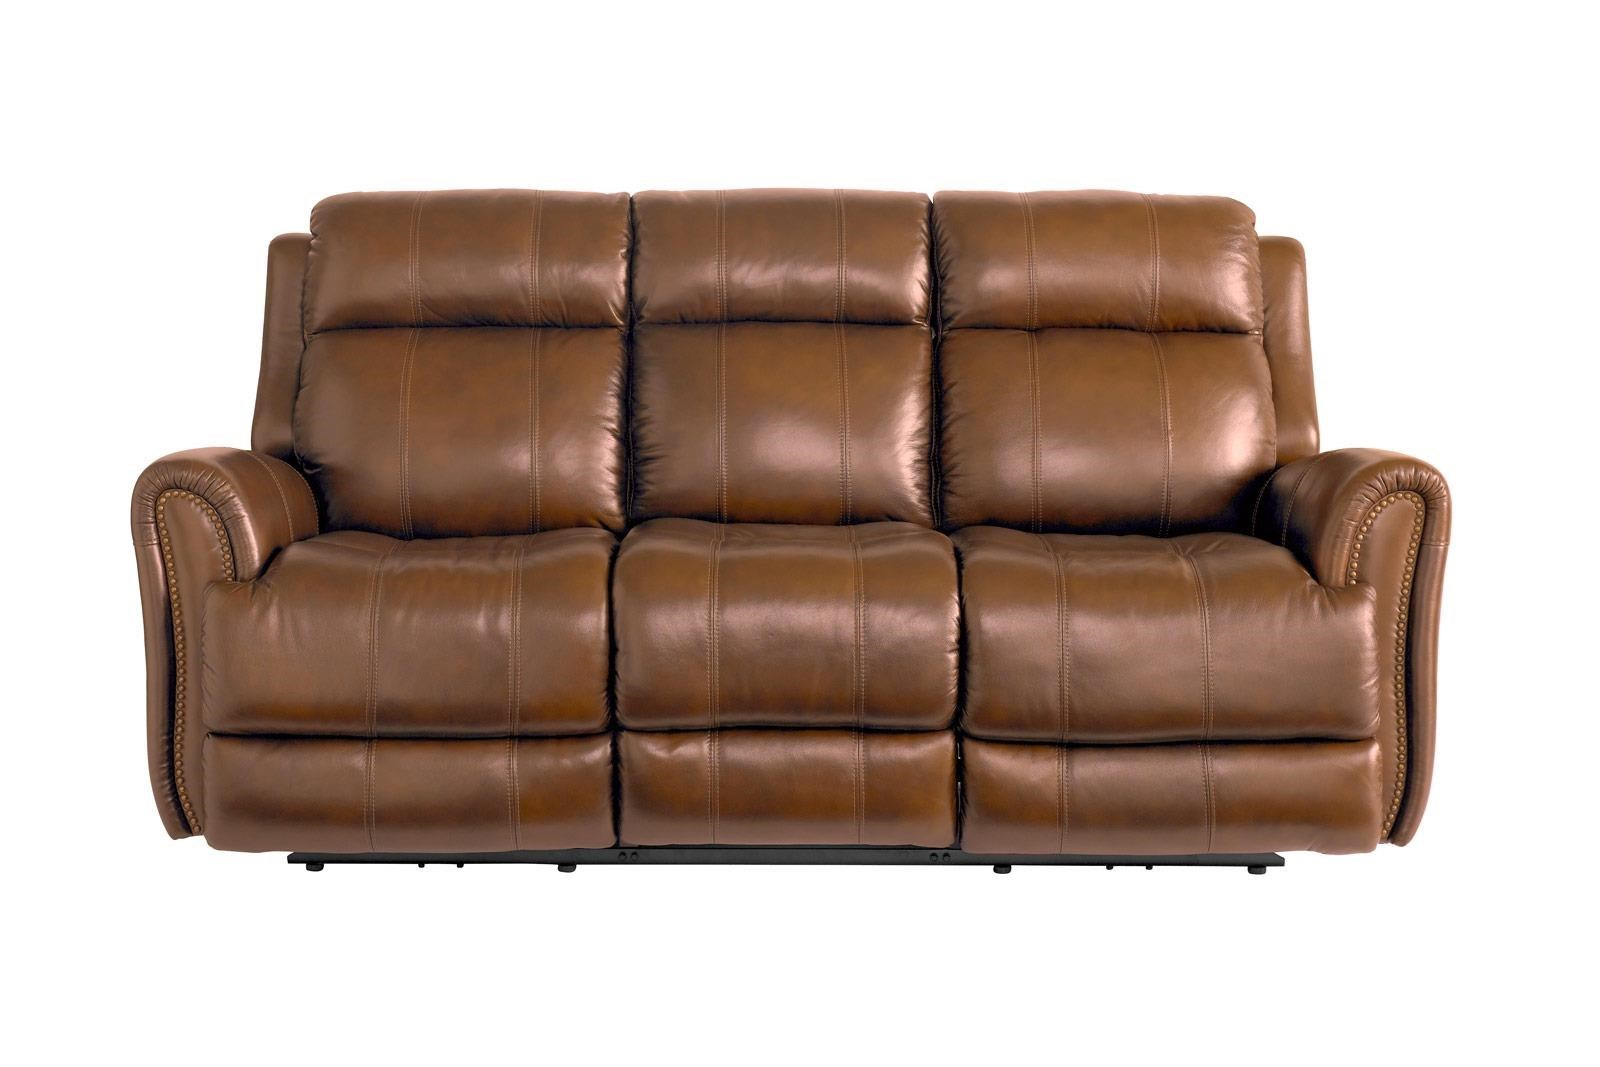 bassett marquee basf 3707 p62u umber leather power reclining sofa rh greatamericanhomestore com leather power recliner sofa and loveseat bennett leather power reclining sofa and power reclining console loveseat